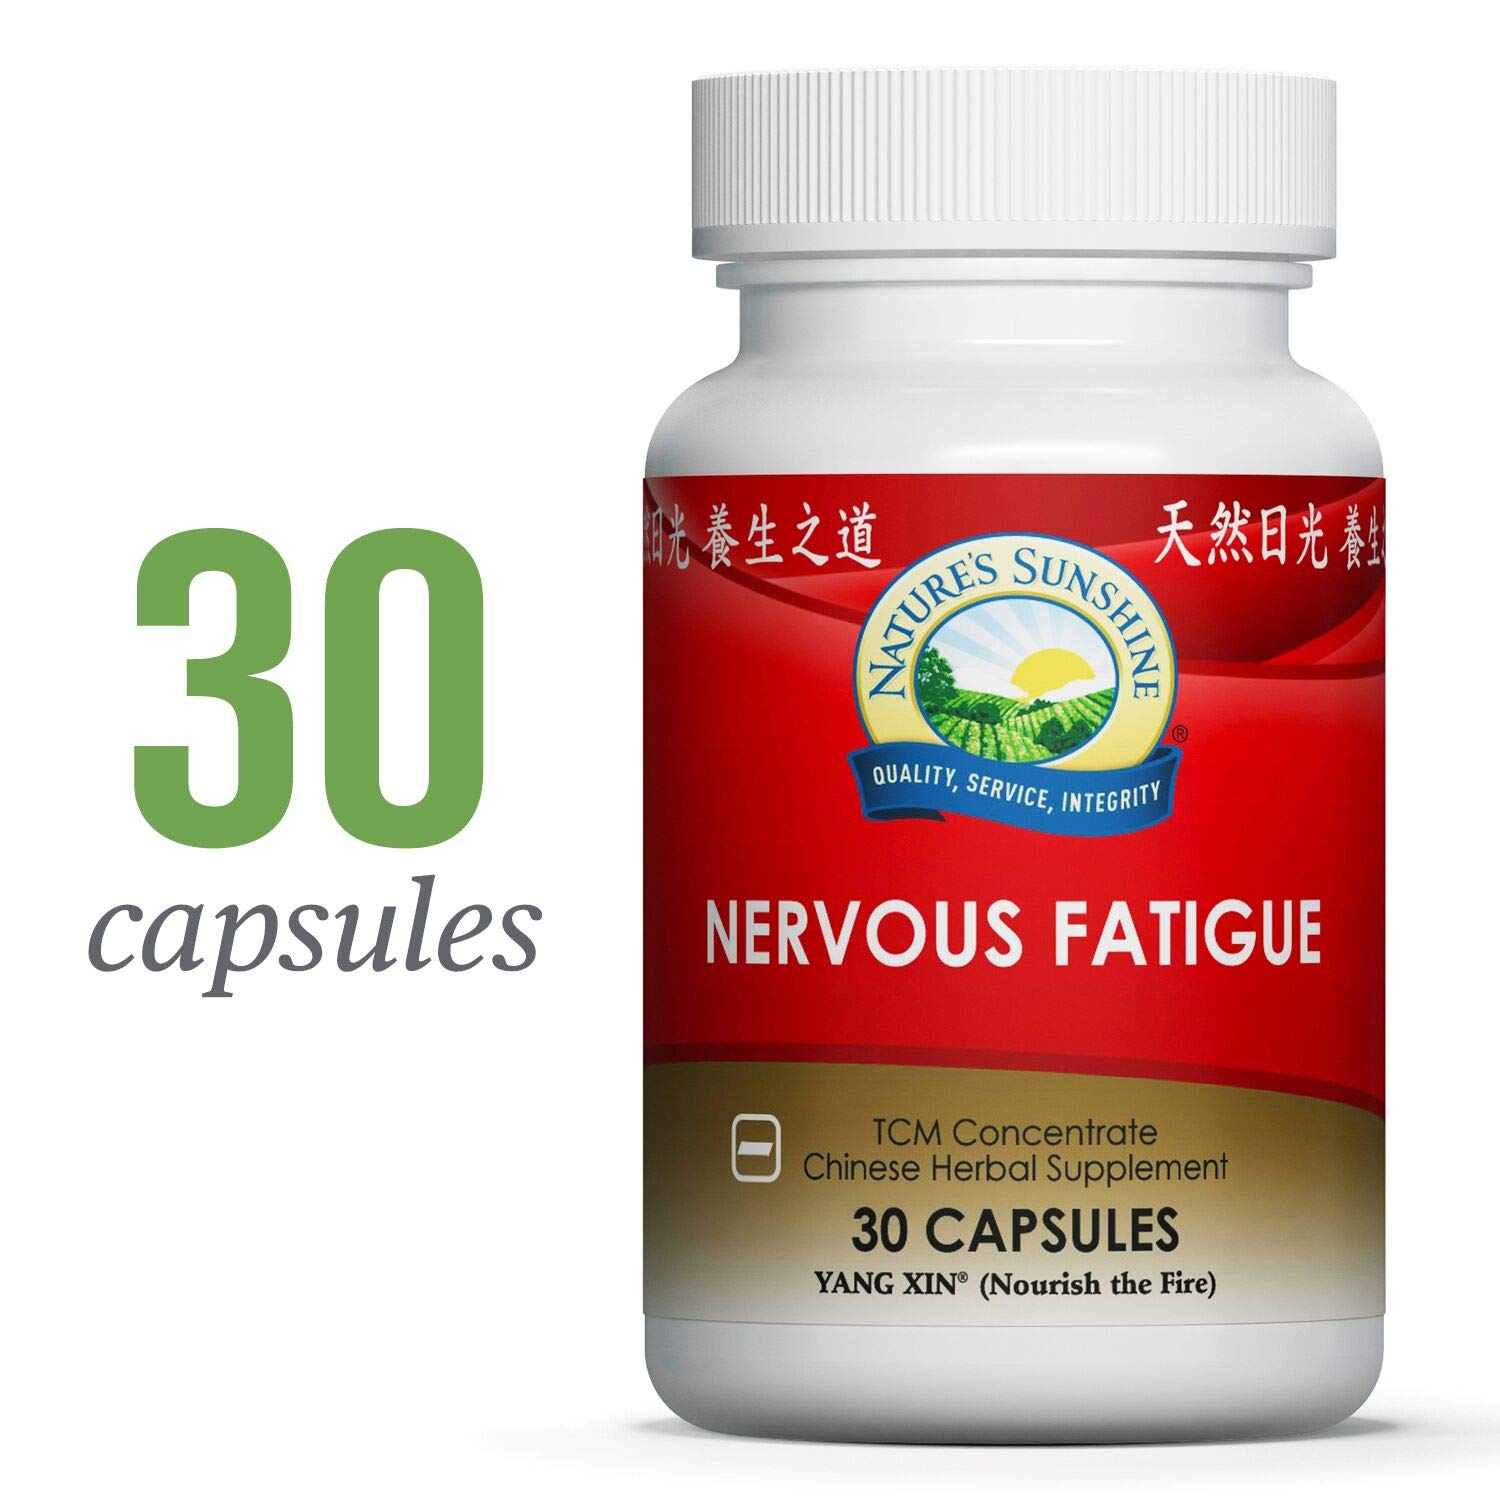 Nature s Sunshine Nervous Fatigue, TCM Concentrate, 30 Capsules Chinese Herb Blend That Helps Quell Stress, Promotes Feelings of Well-Being, Supports Digestion and Promotes Sleep